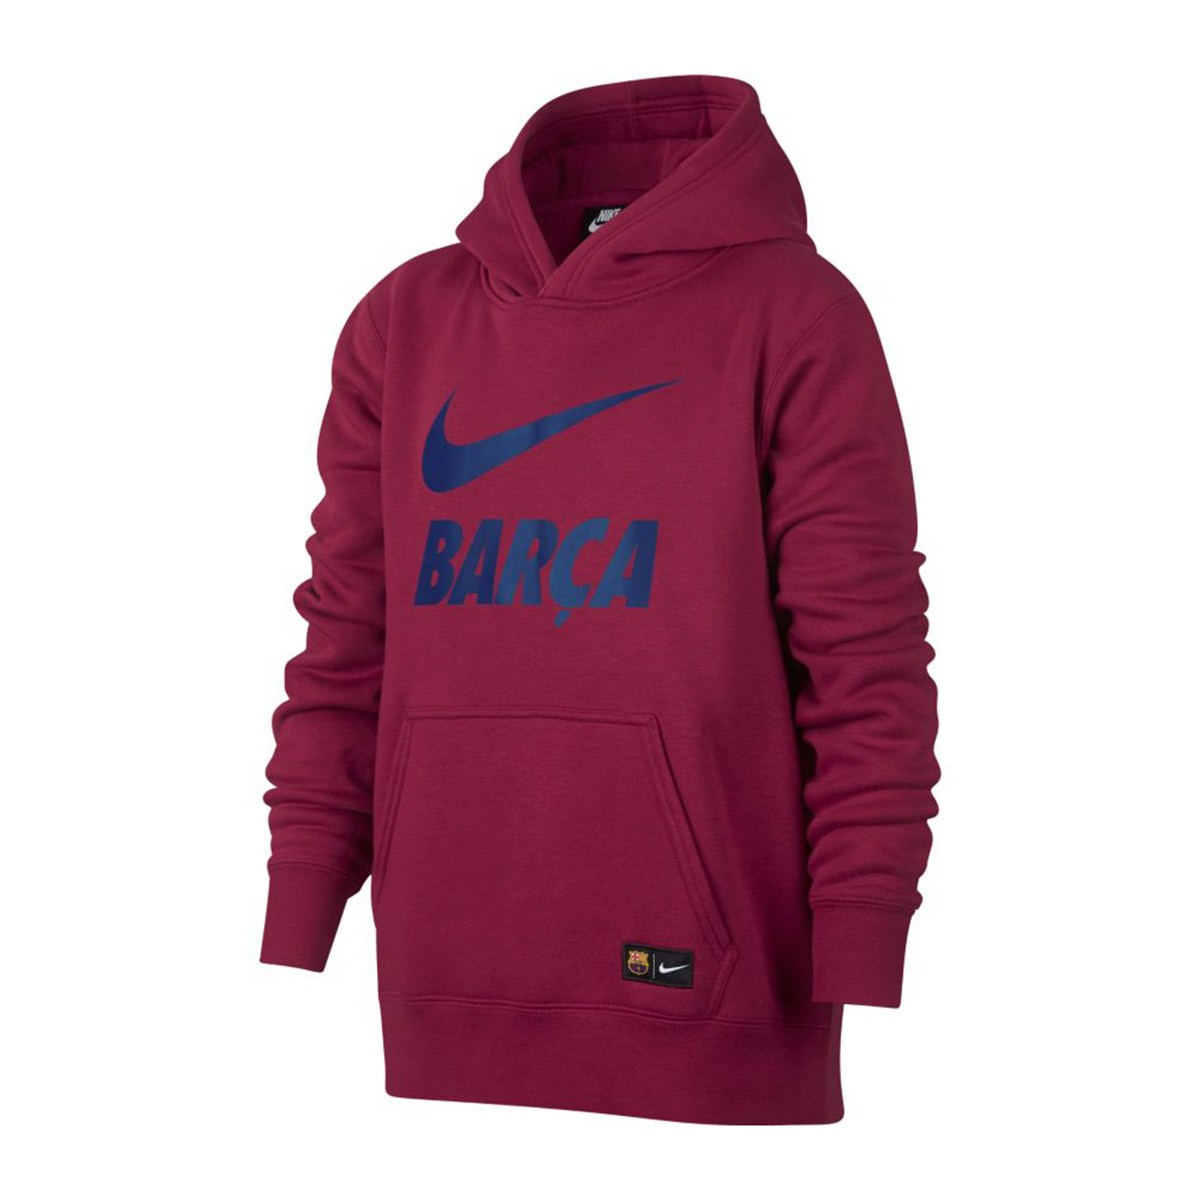 8c8bec077 Nike Sportswear FC Barcelona Sweatshirt. Noble red-Deep royal blue ...